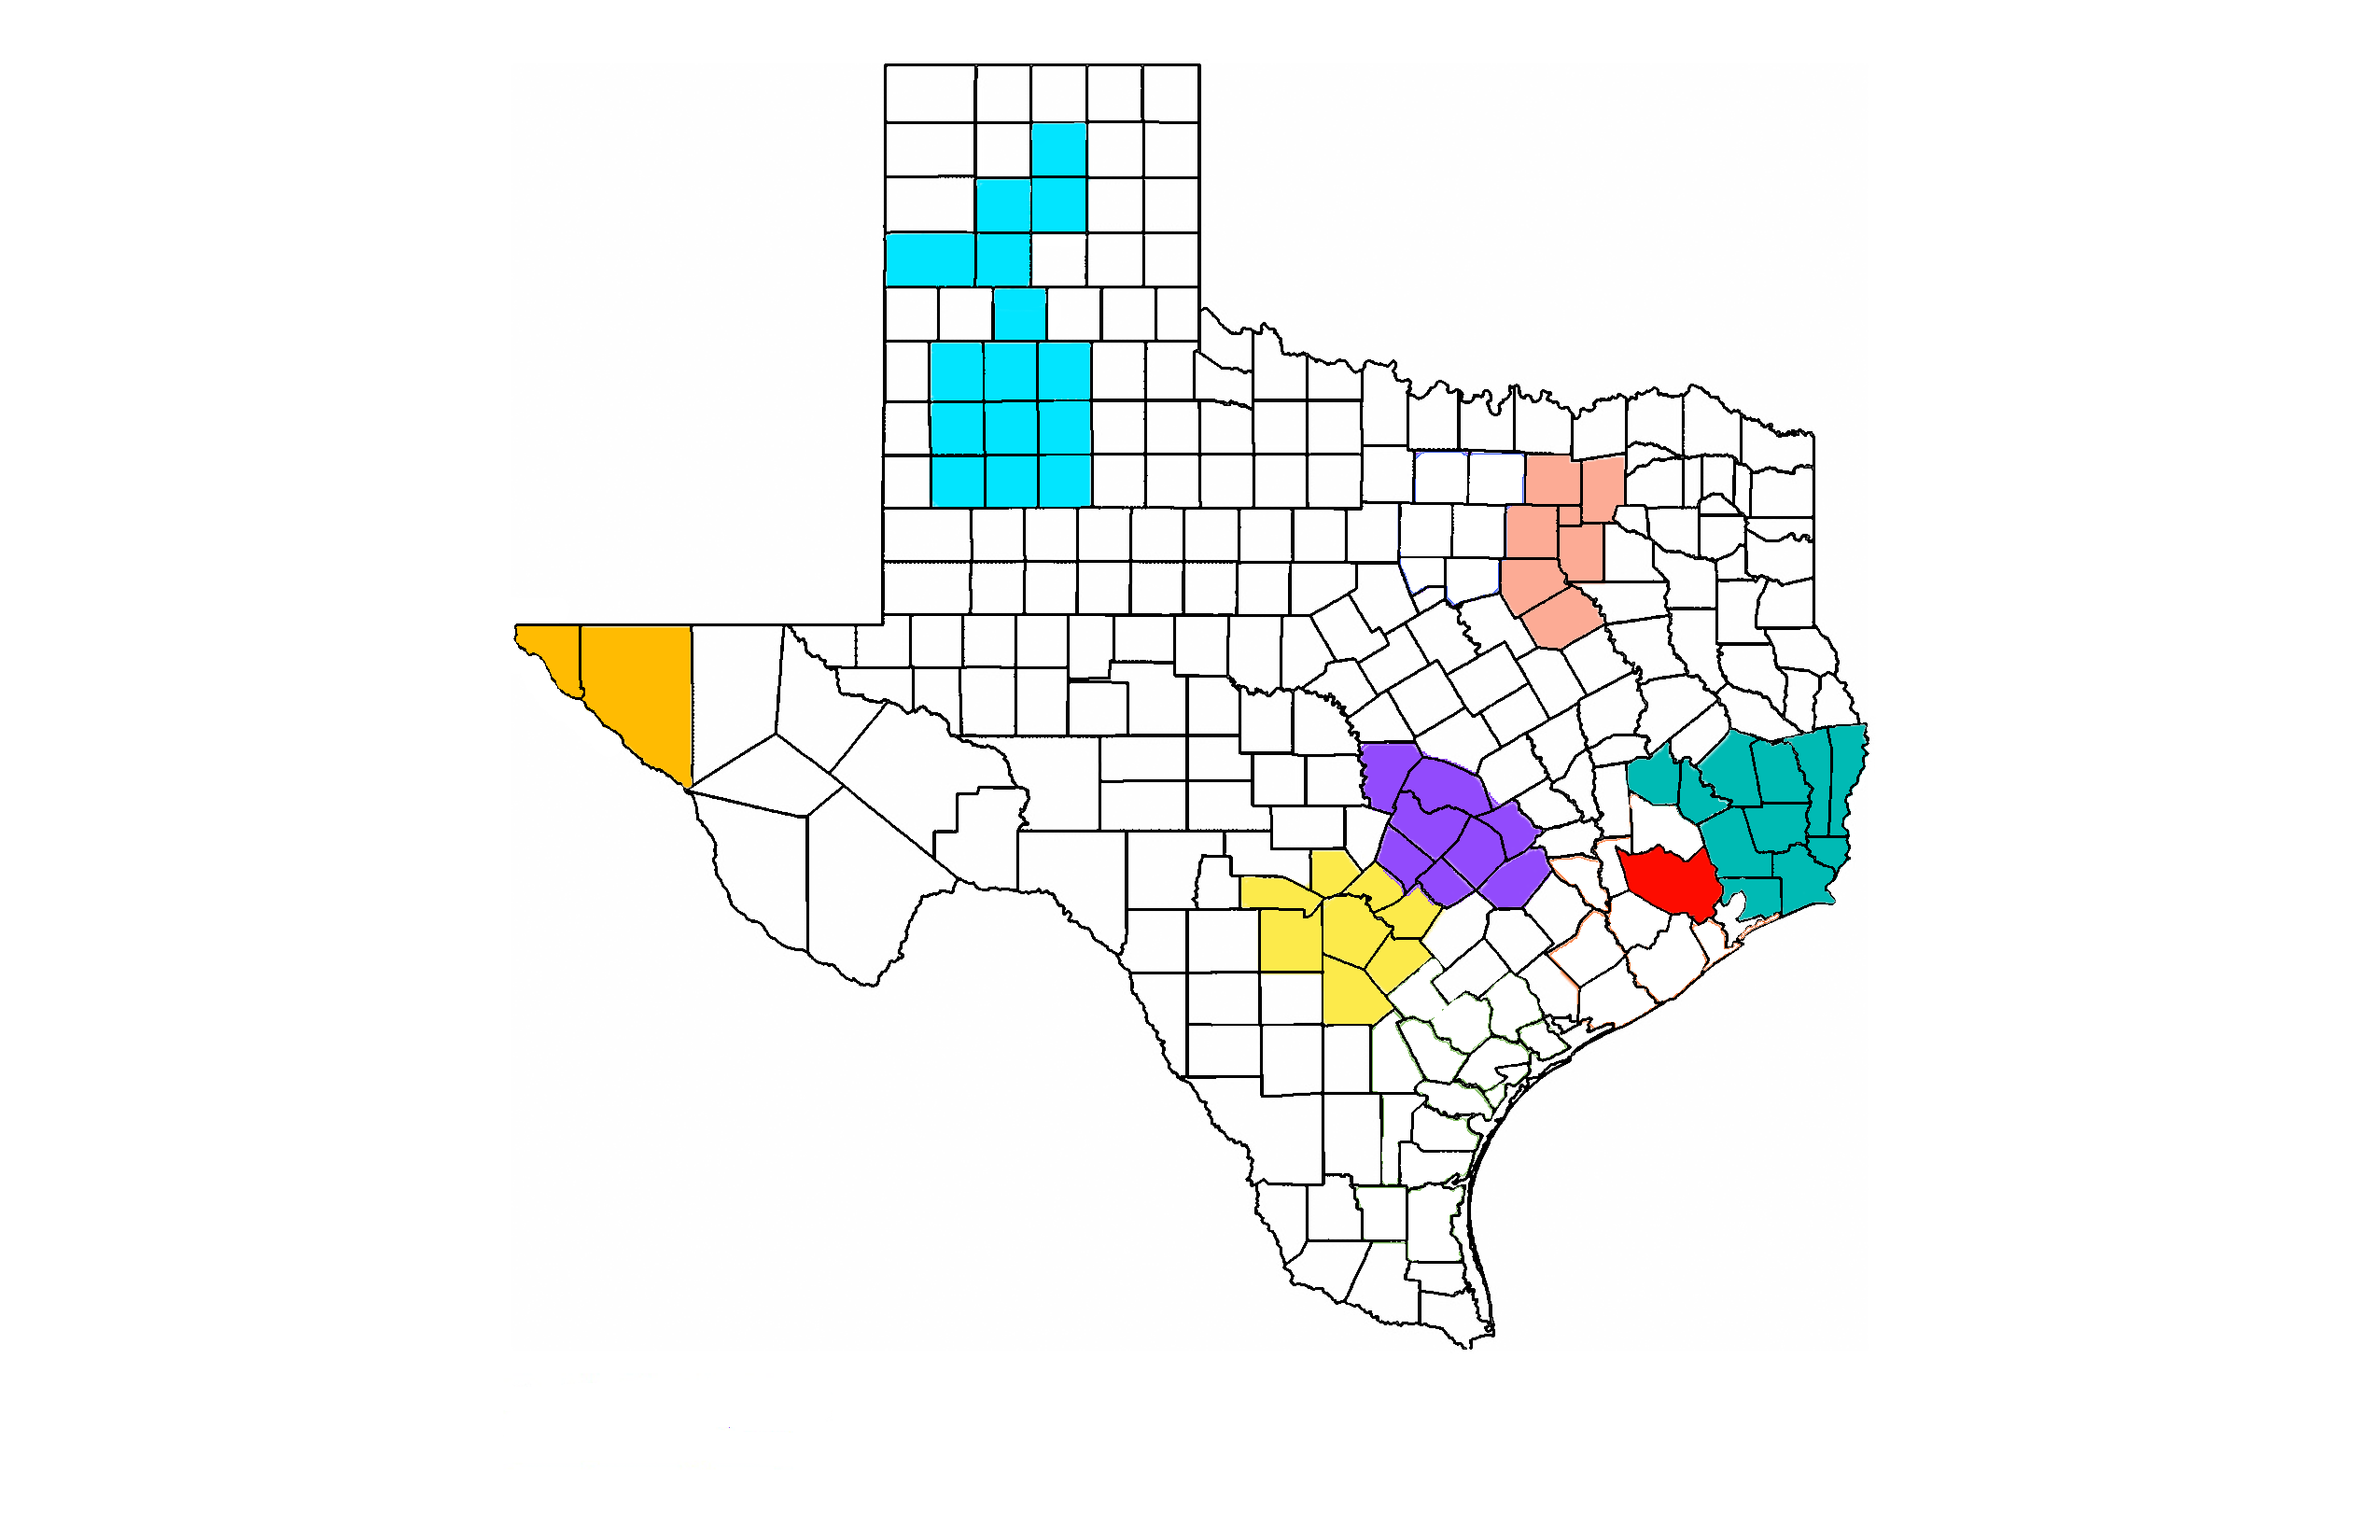 CDS service counties marked on map of Texas